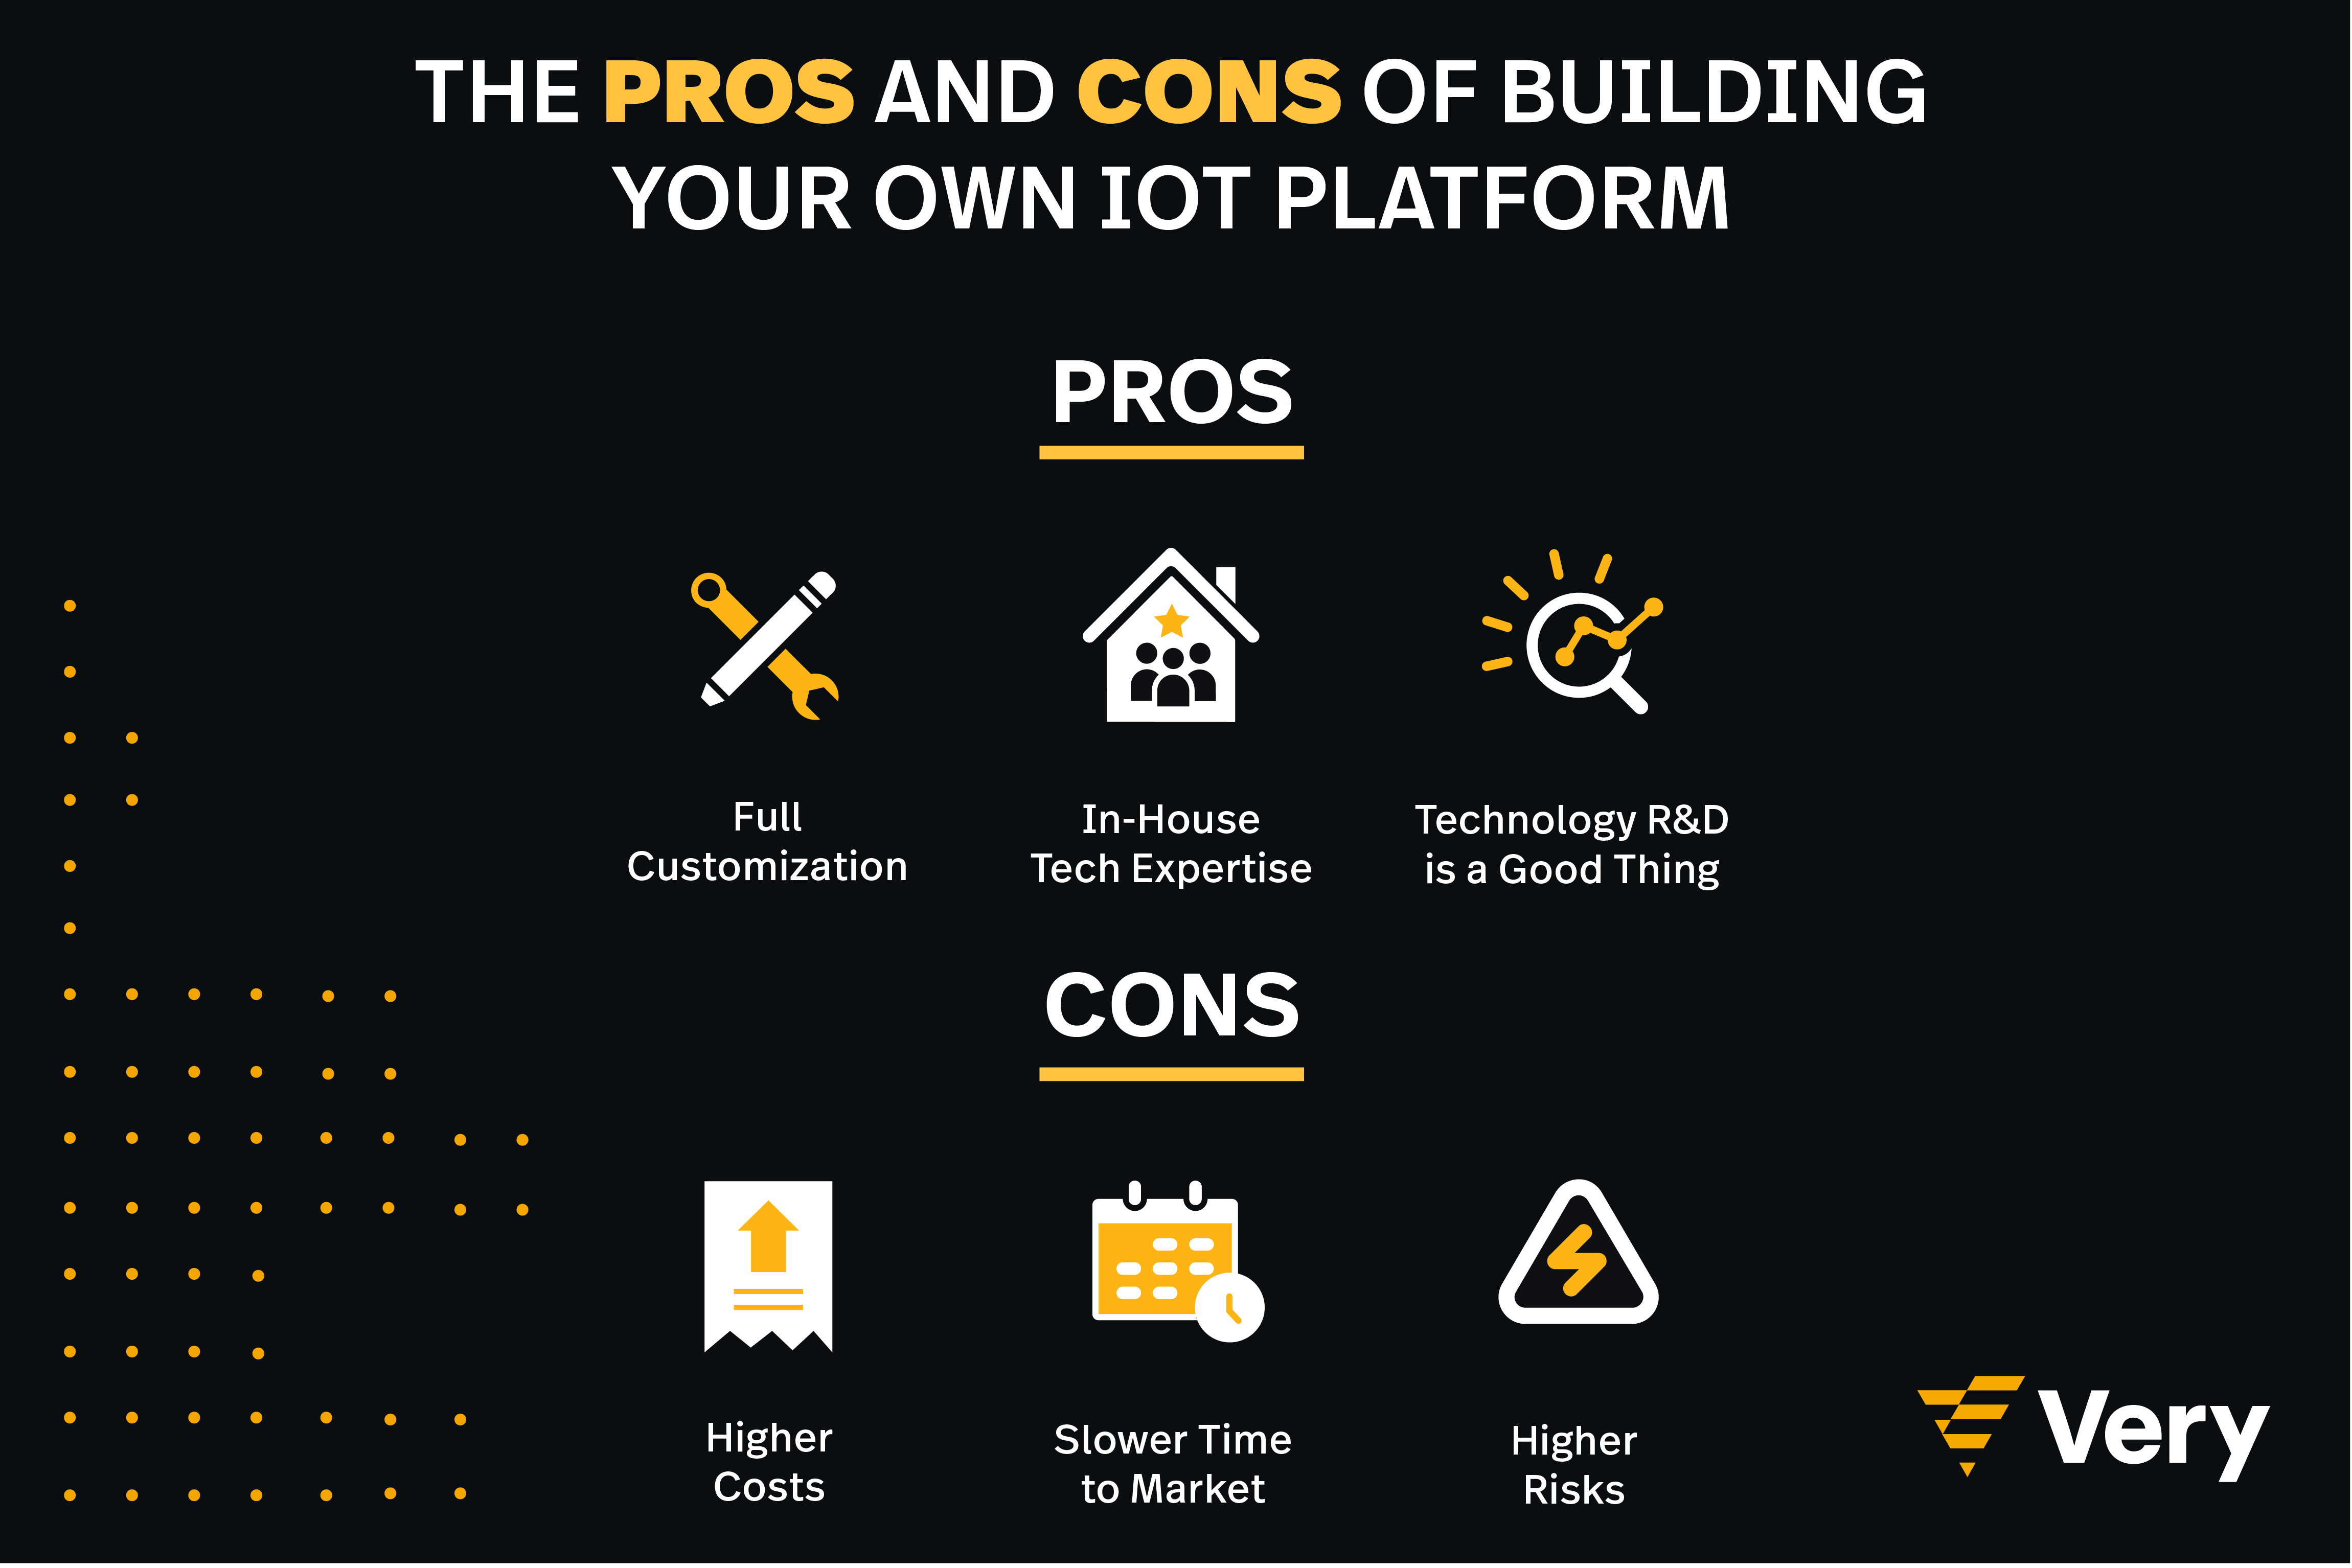 Pros and Cons of Building Your Own IoT Platform